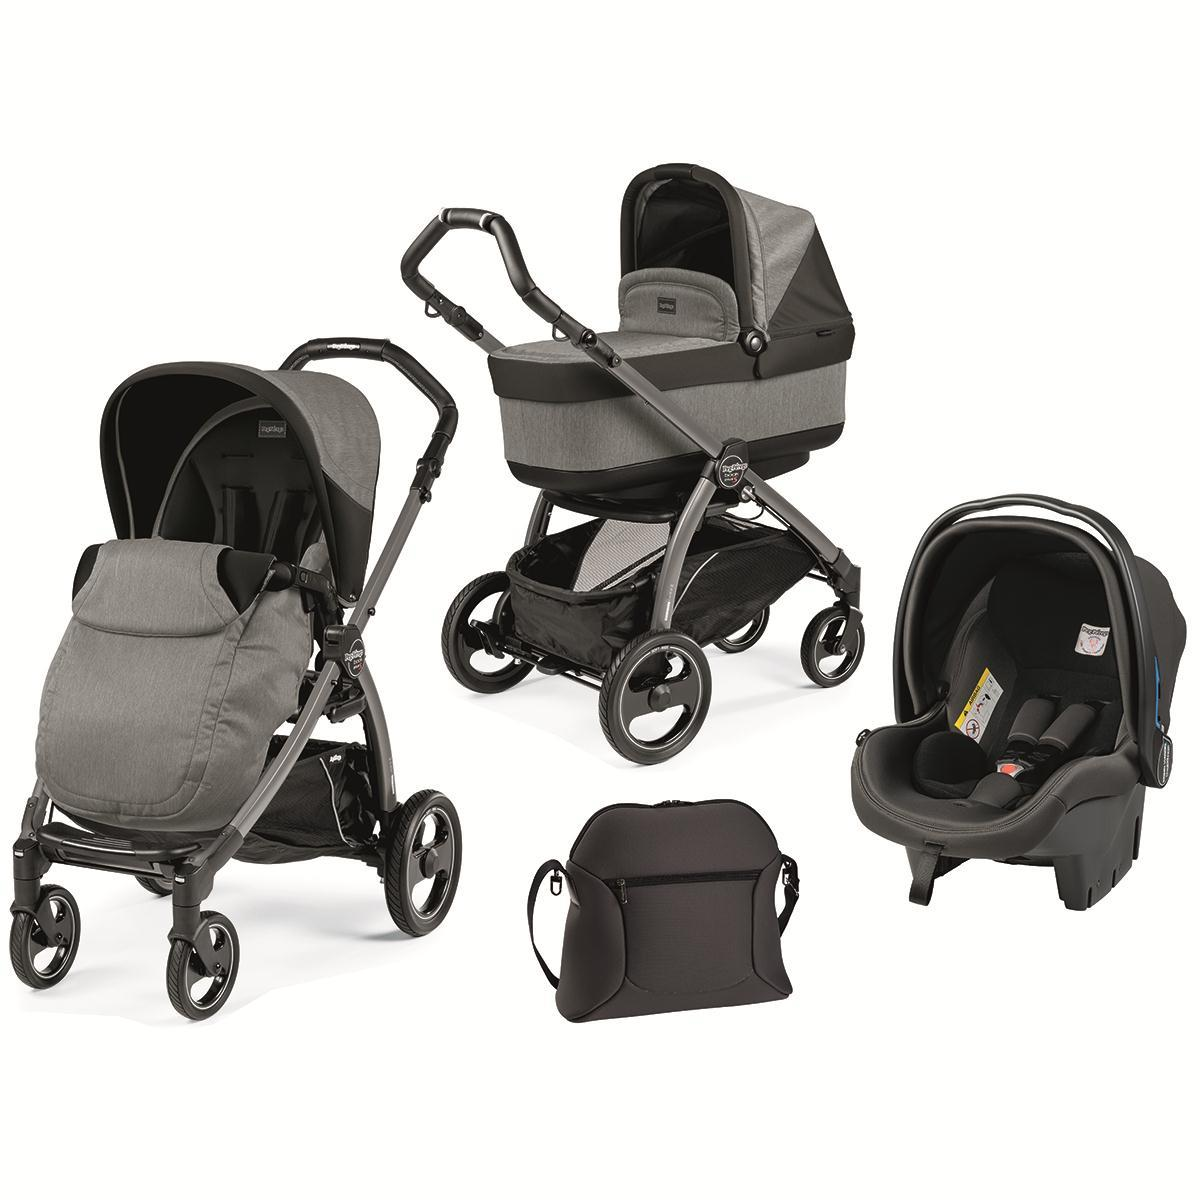 Peg Perego Book 51 Completo Yorum Peg Perego 1161171 Atmo Peg Perego Book Plus S Pop Up Completo Modüler Sistem Bebek Arabası Atmosphere